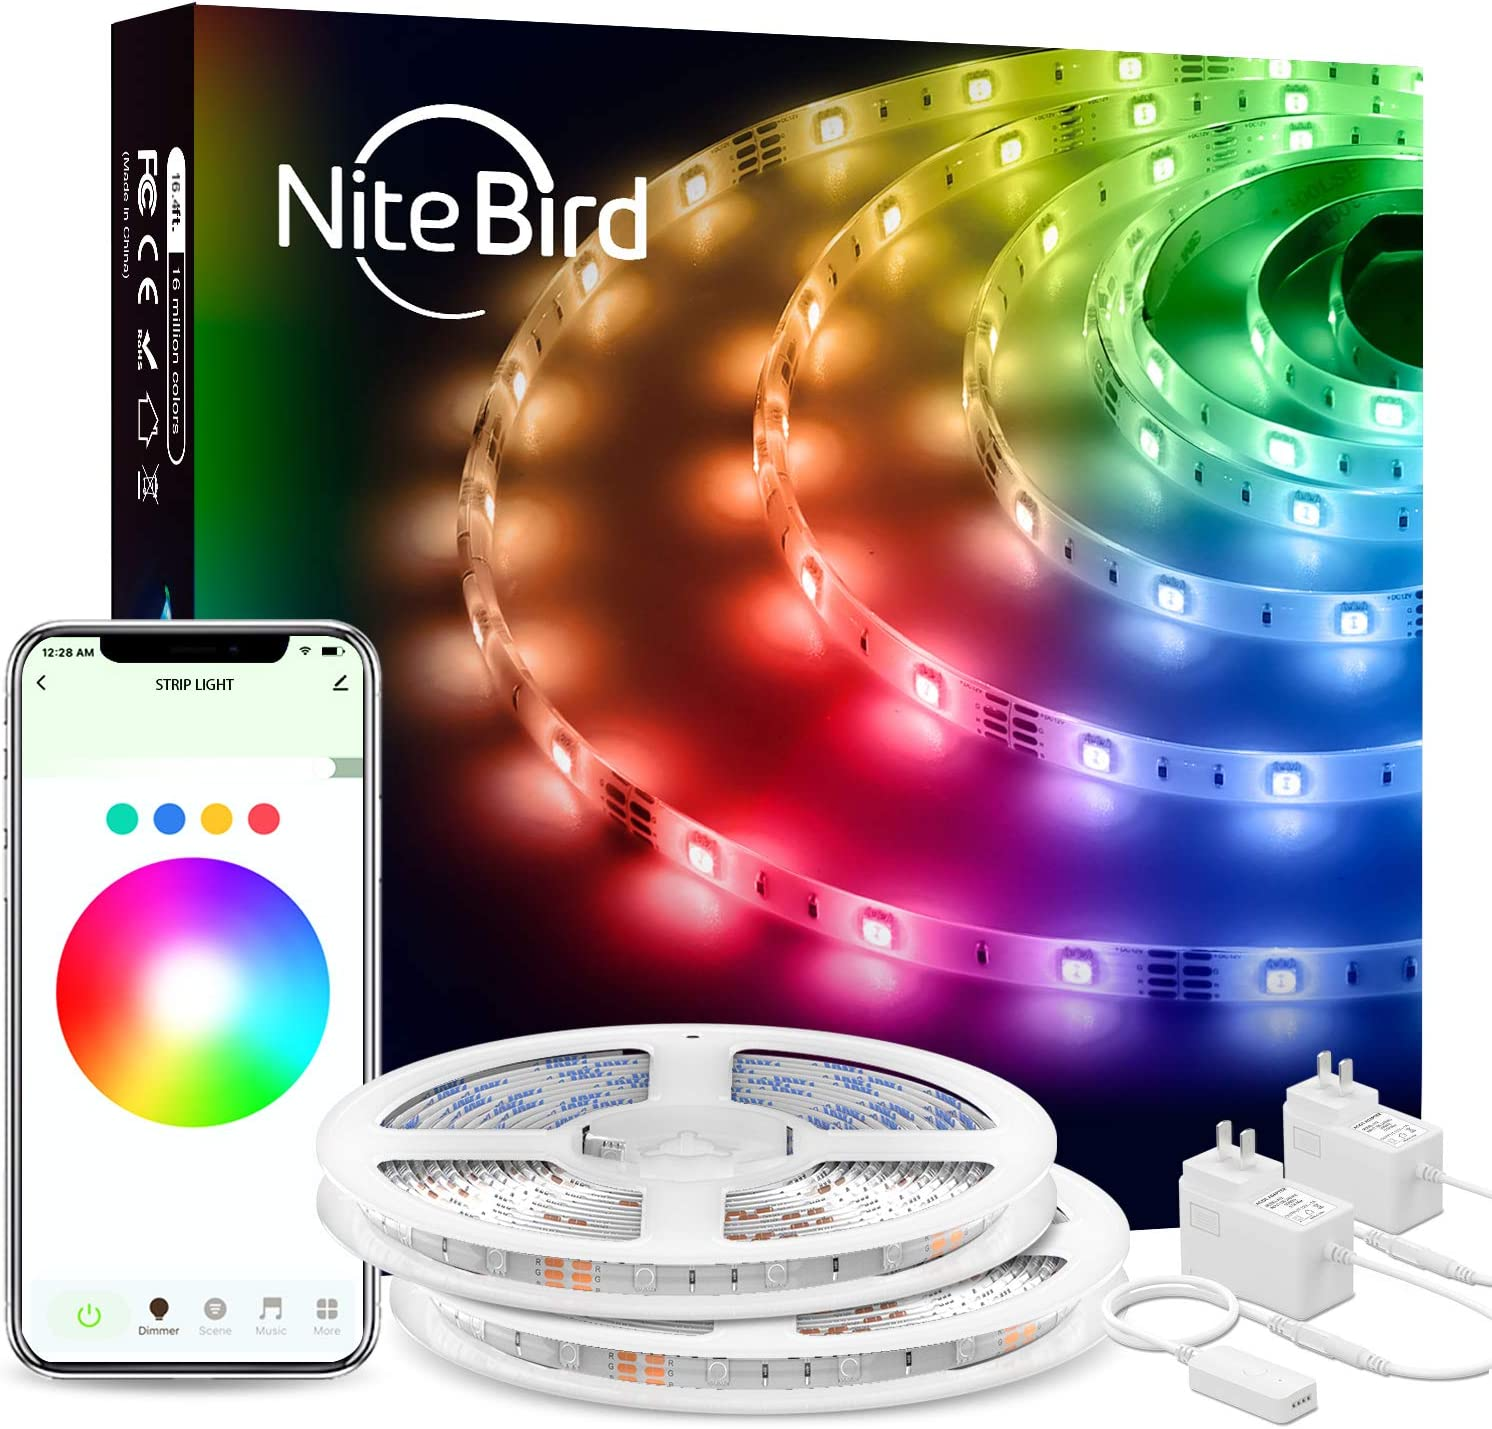 NiteBird Smart LED Strip Lights, 32.8ft WiFi Light Strips Works with Alexa Google Home, App Control, 16 Million Color Changing, Music Sync, Brighter 5050 LED for Bedroom Kitchen TV Party, 2pack 16.4ft